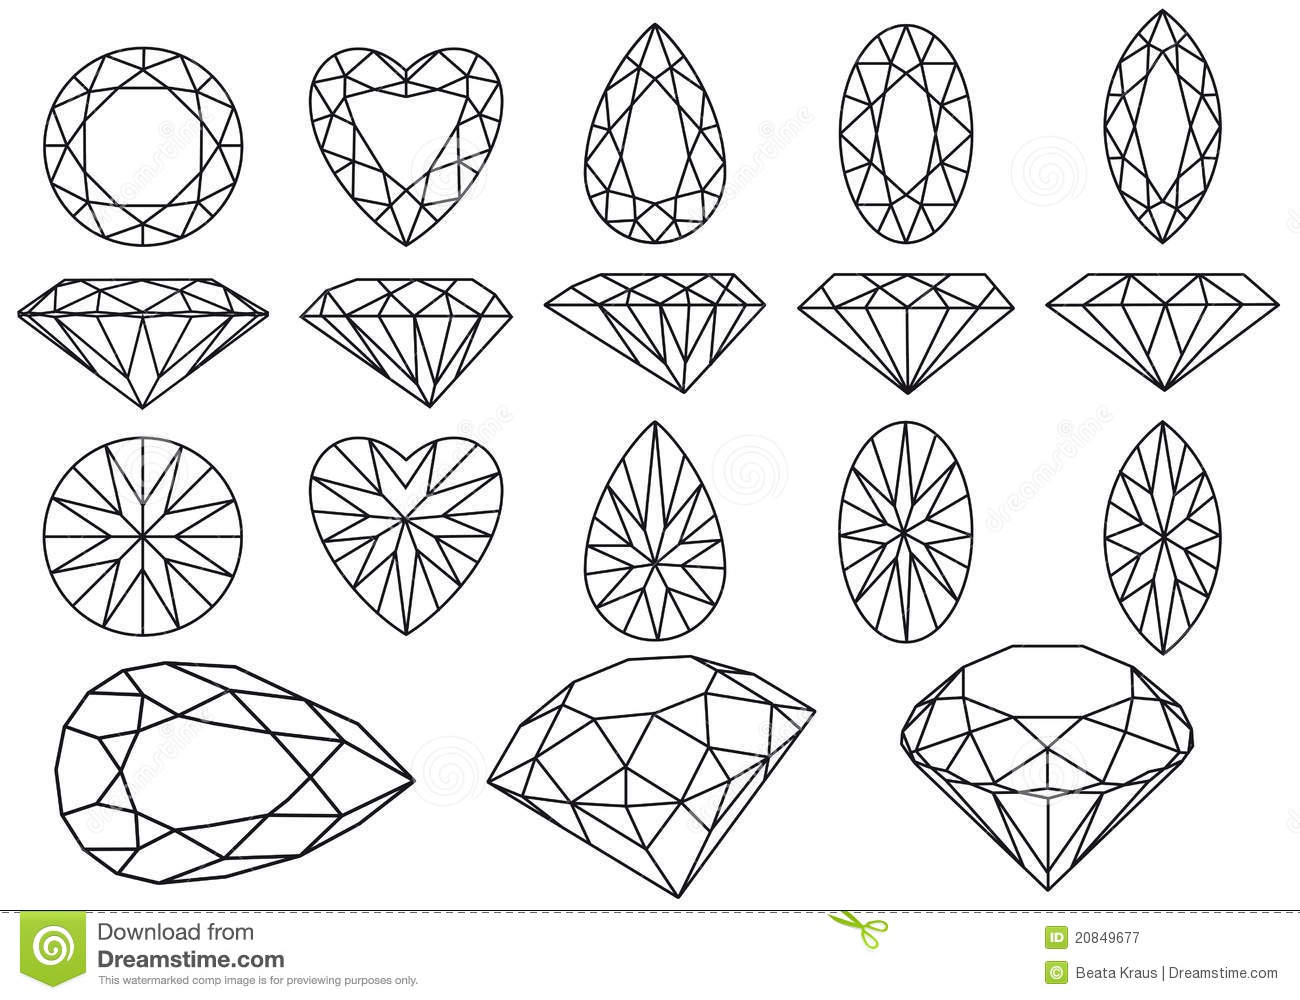 G H Earrings With Screw Back 2682790 besides 231122873501 together with Jewelry in addition Royalty Free Stock Photography Vector Diamond Set Image20849677 moreover D29tZW5zLXJpbmctc2l6ZS1jaGFydC1wcmludGFibGU. on 1 7 carat diamond